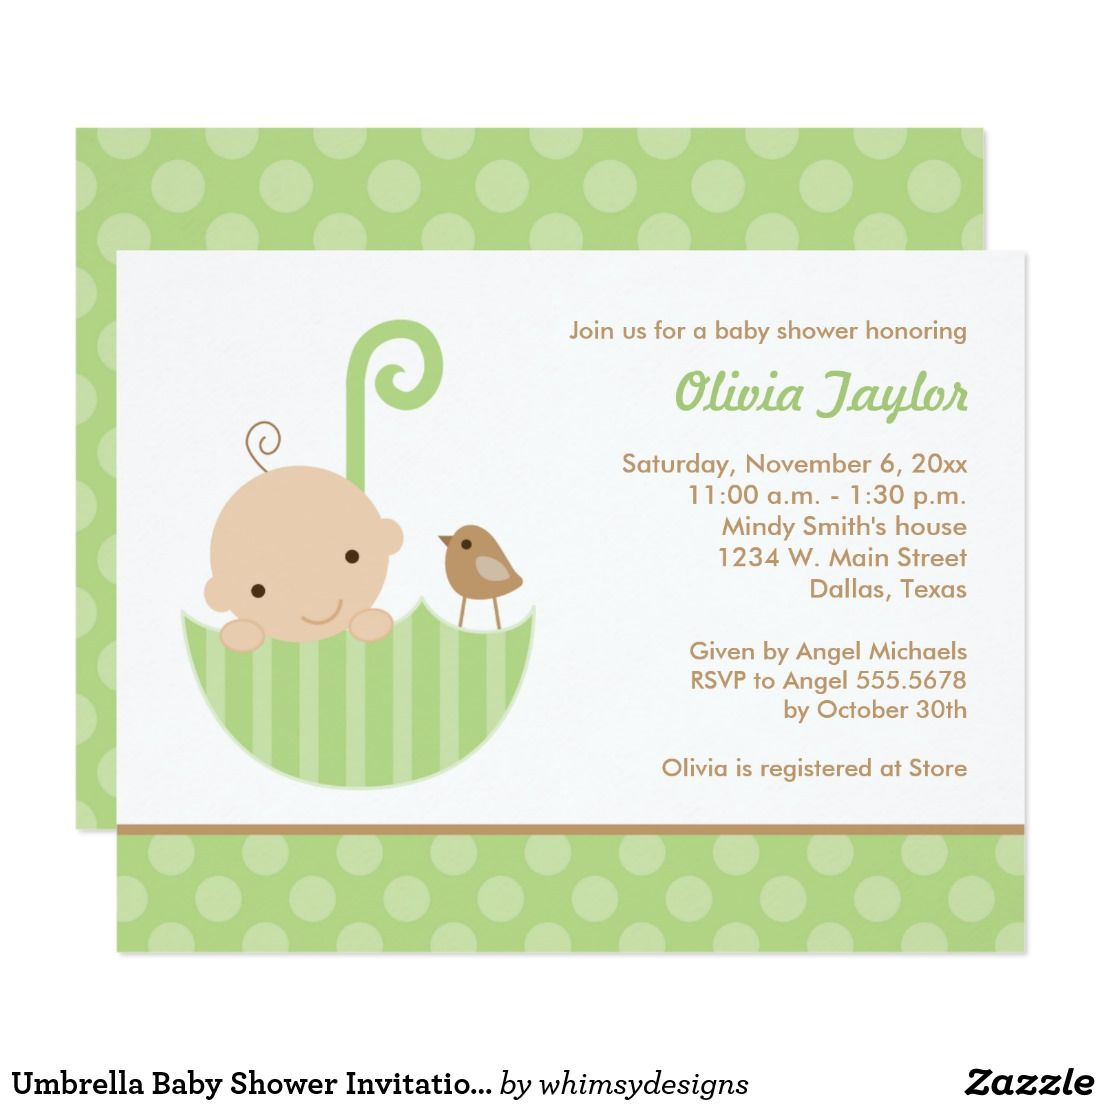 Umbrella Baby Shower Invitations in Green | Umbrella baby shower and ...